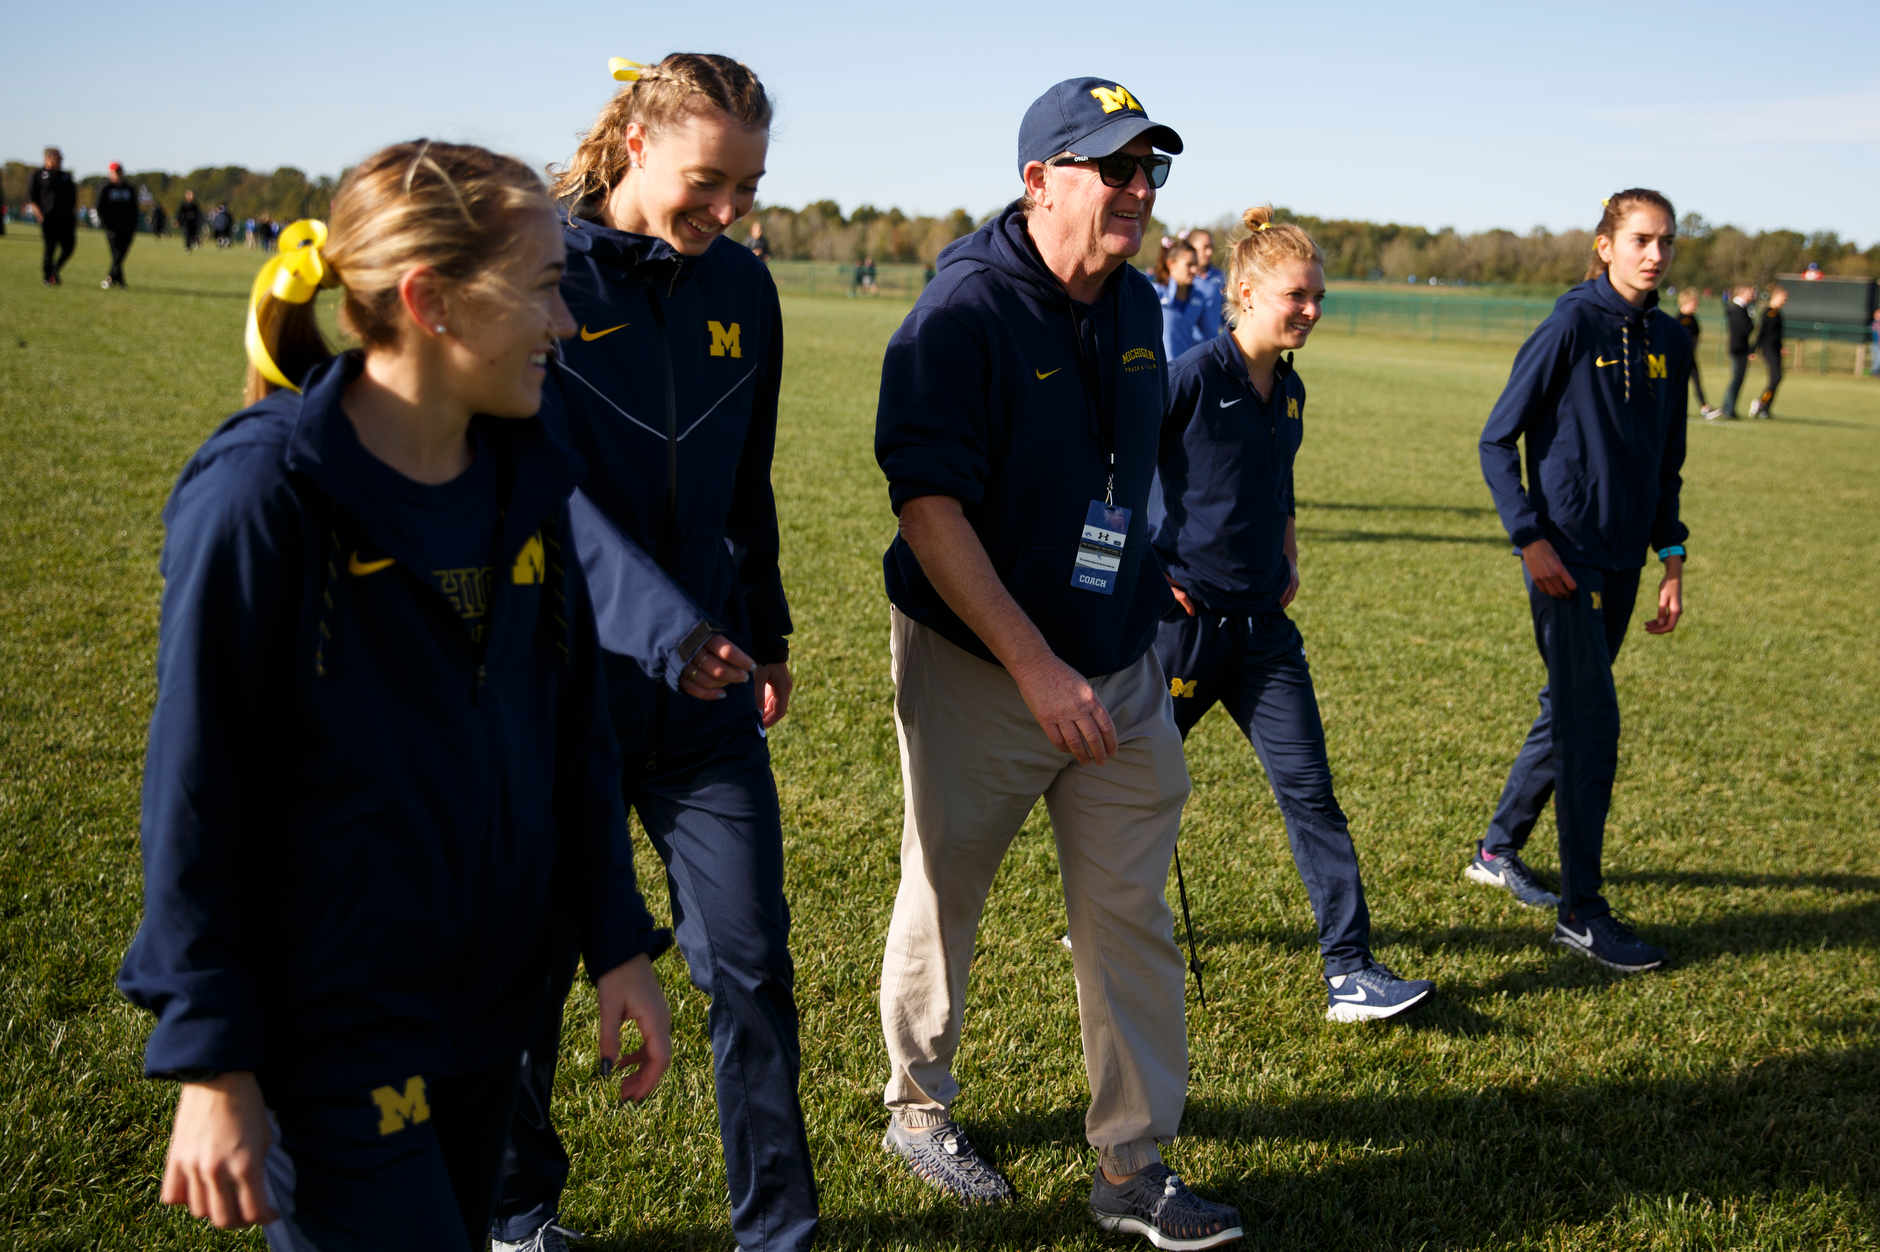 Michigan Head Coach Mike McGuire speaks with runners before the Indiana State Pre-National Cross Country Invitational in Terre Haute, Indiana on Saturday, Oct. 19, 2019. (Photo by James Brosher)